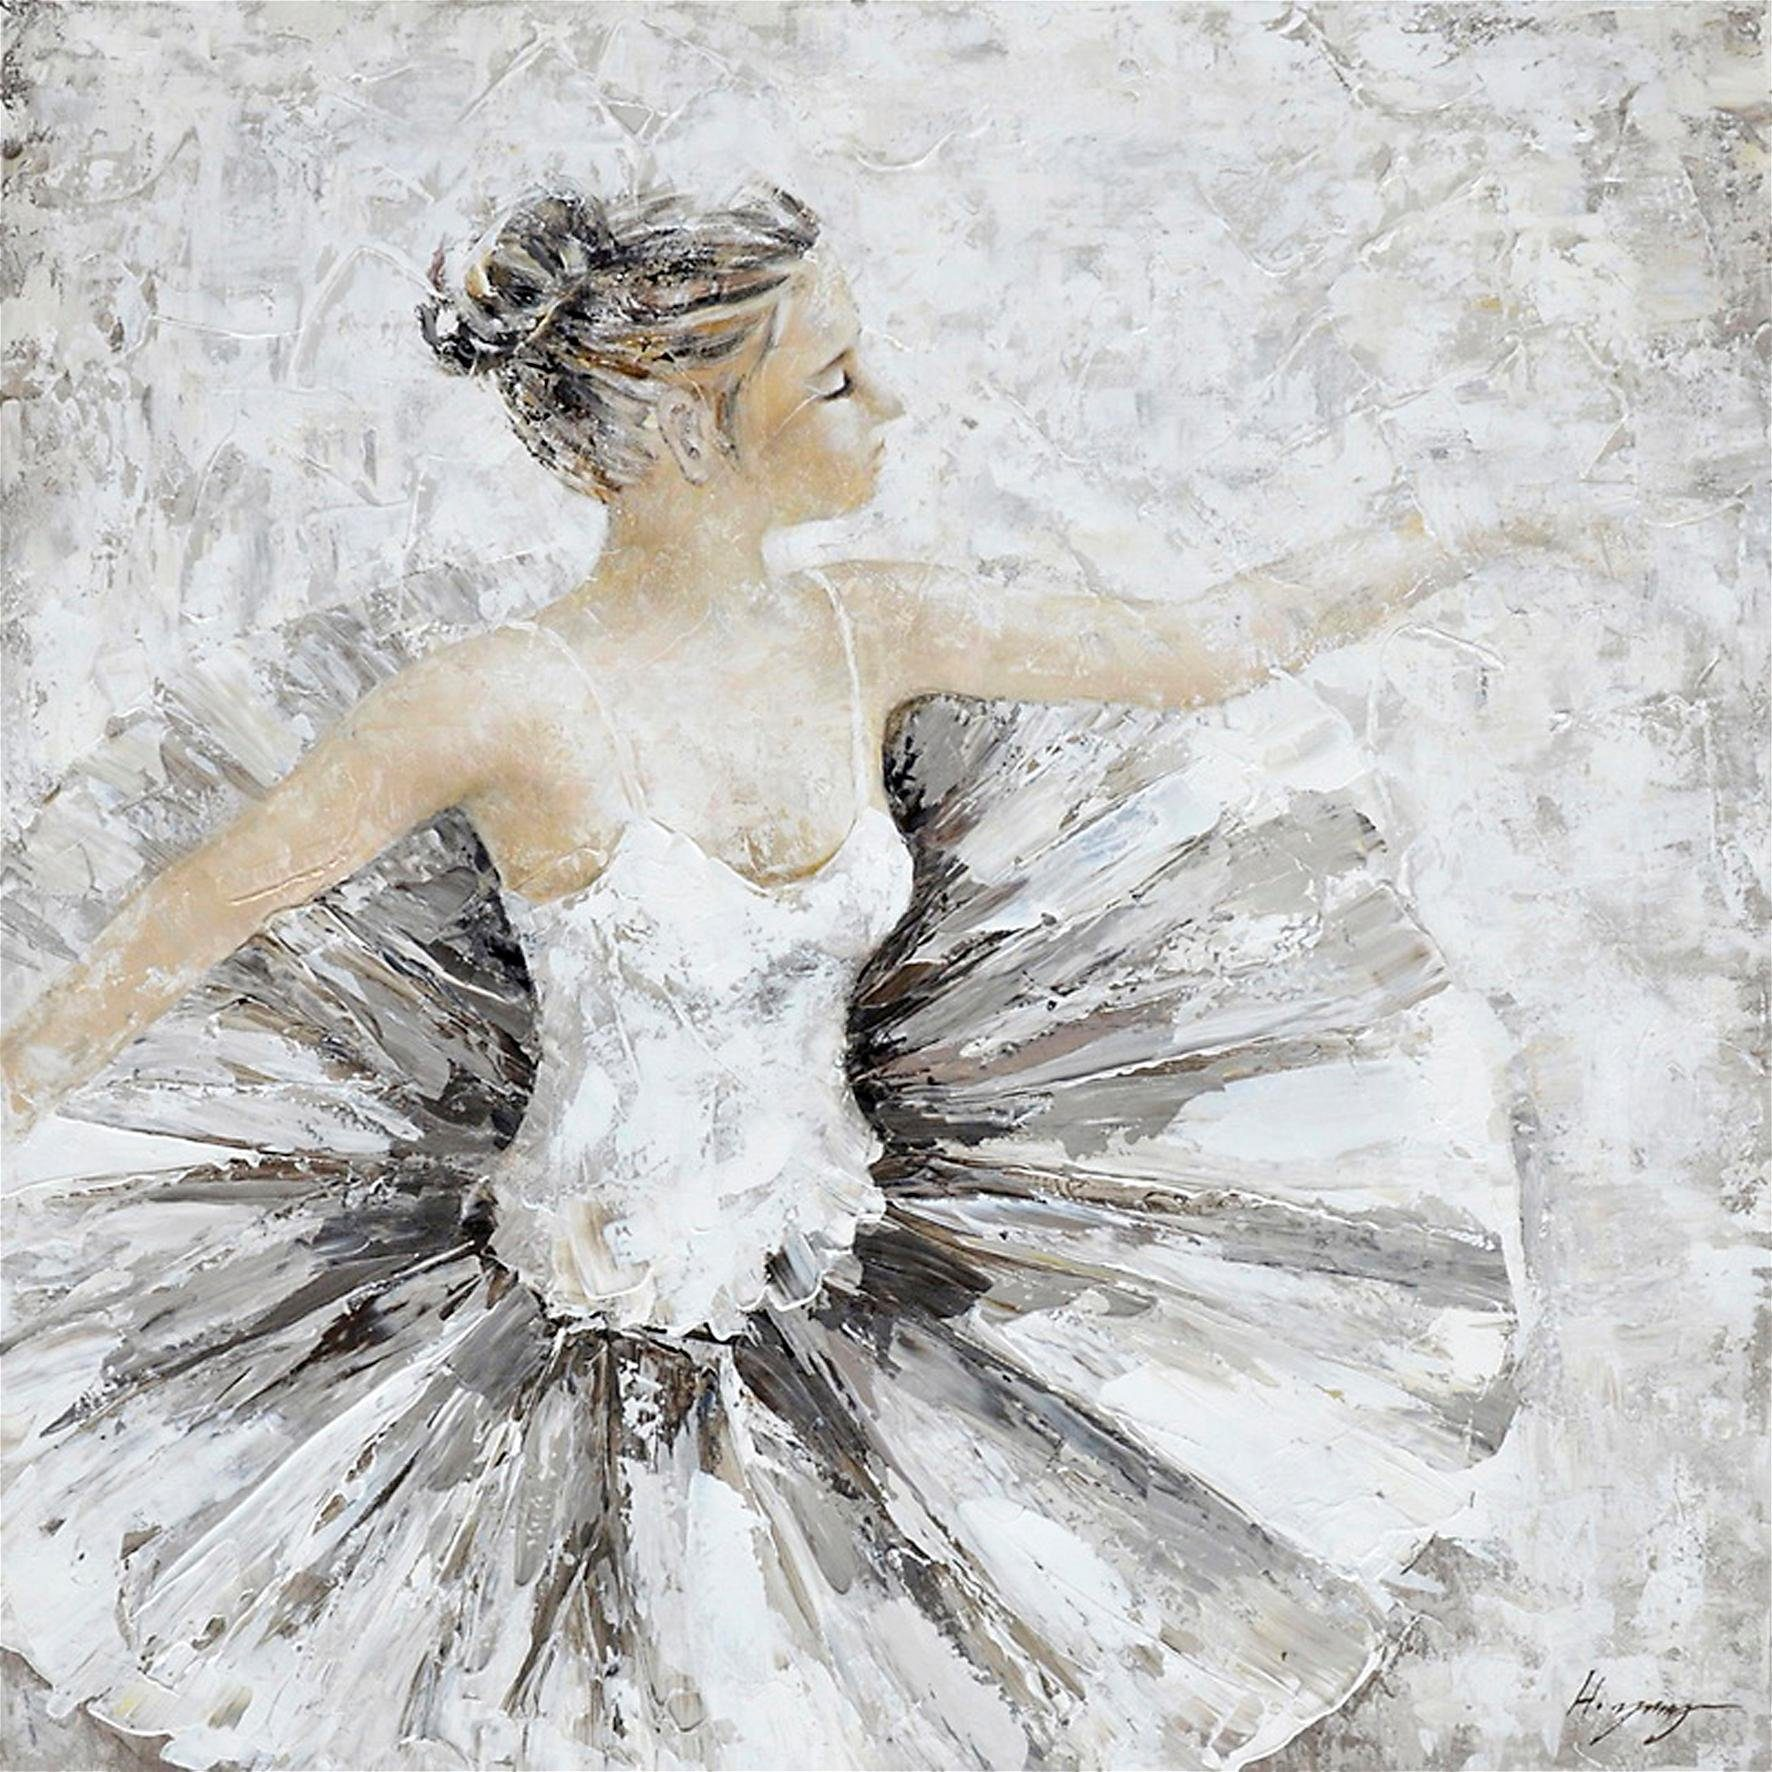 Premium Collection by Home affaire Original Gemälde »Ballerina« 100/100 cm